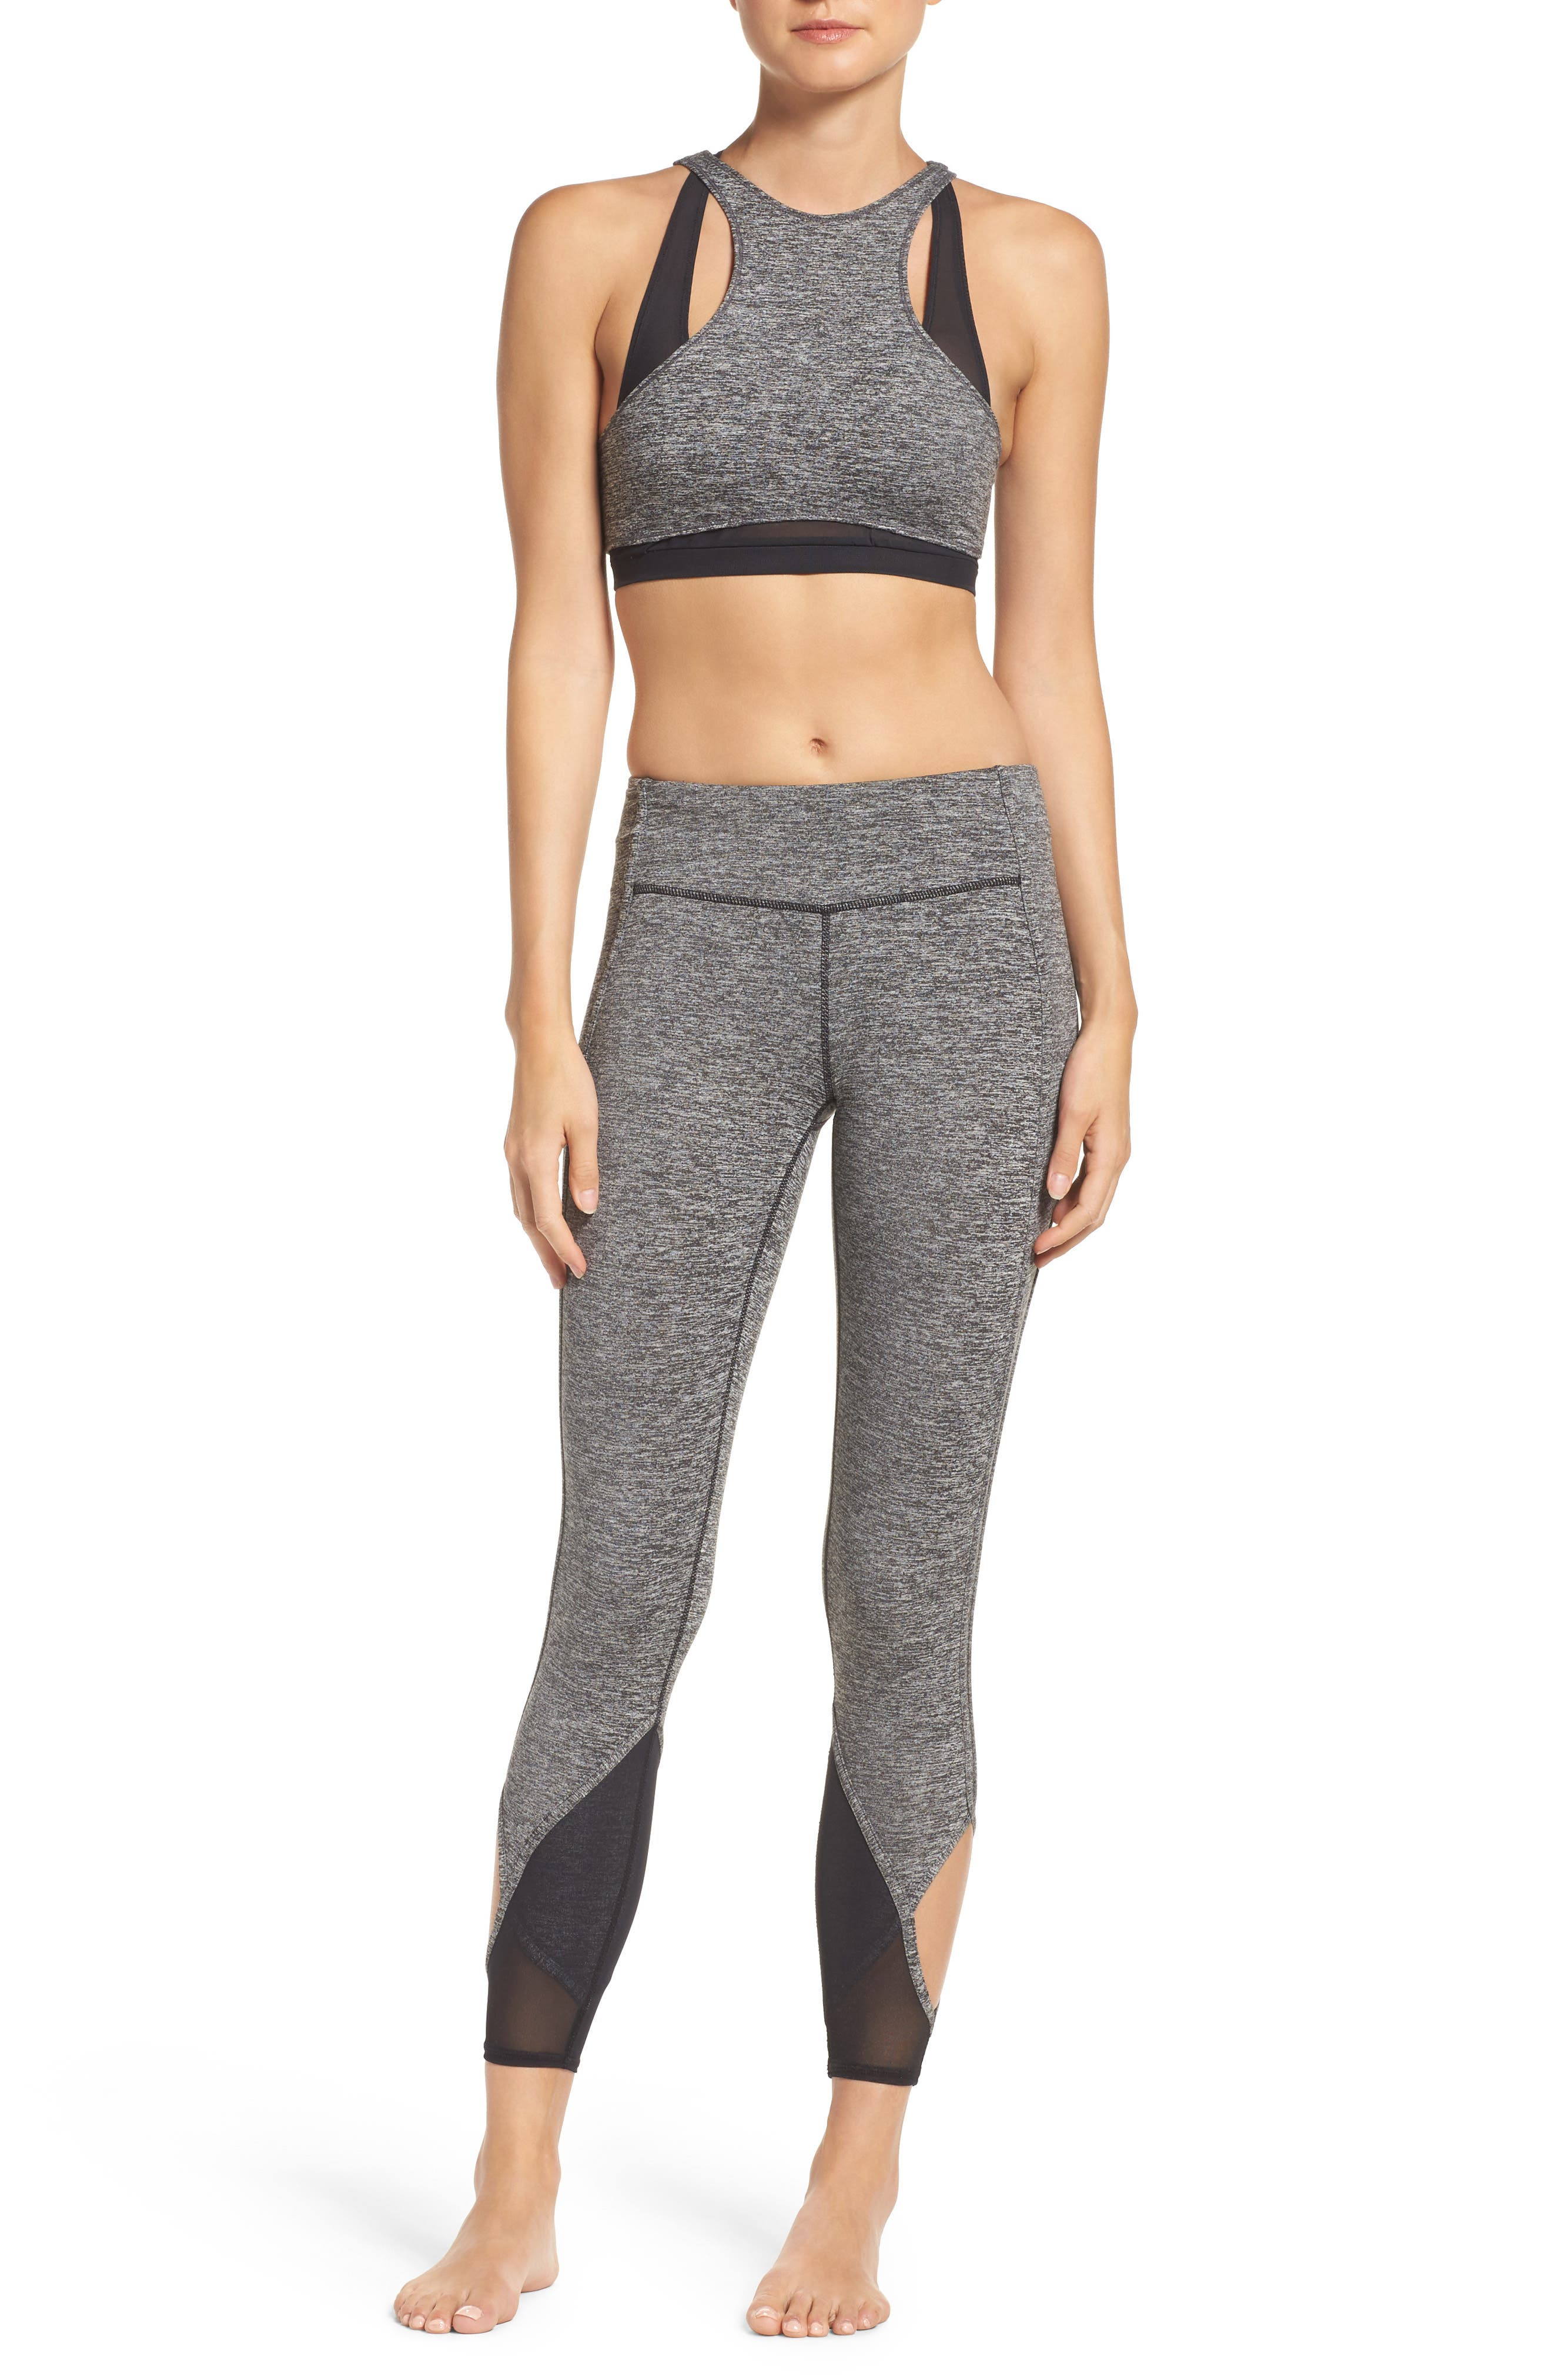 Free People Sports Bra & Leggings Outfit